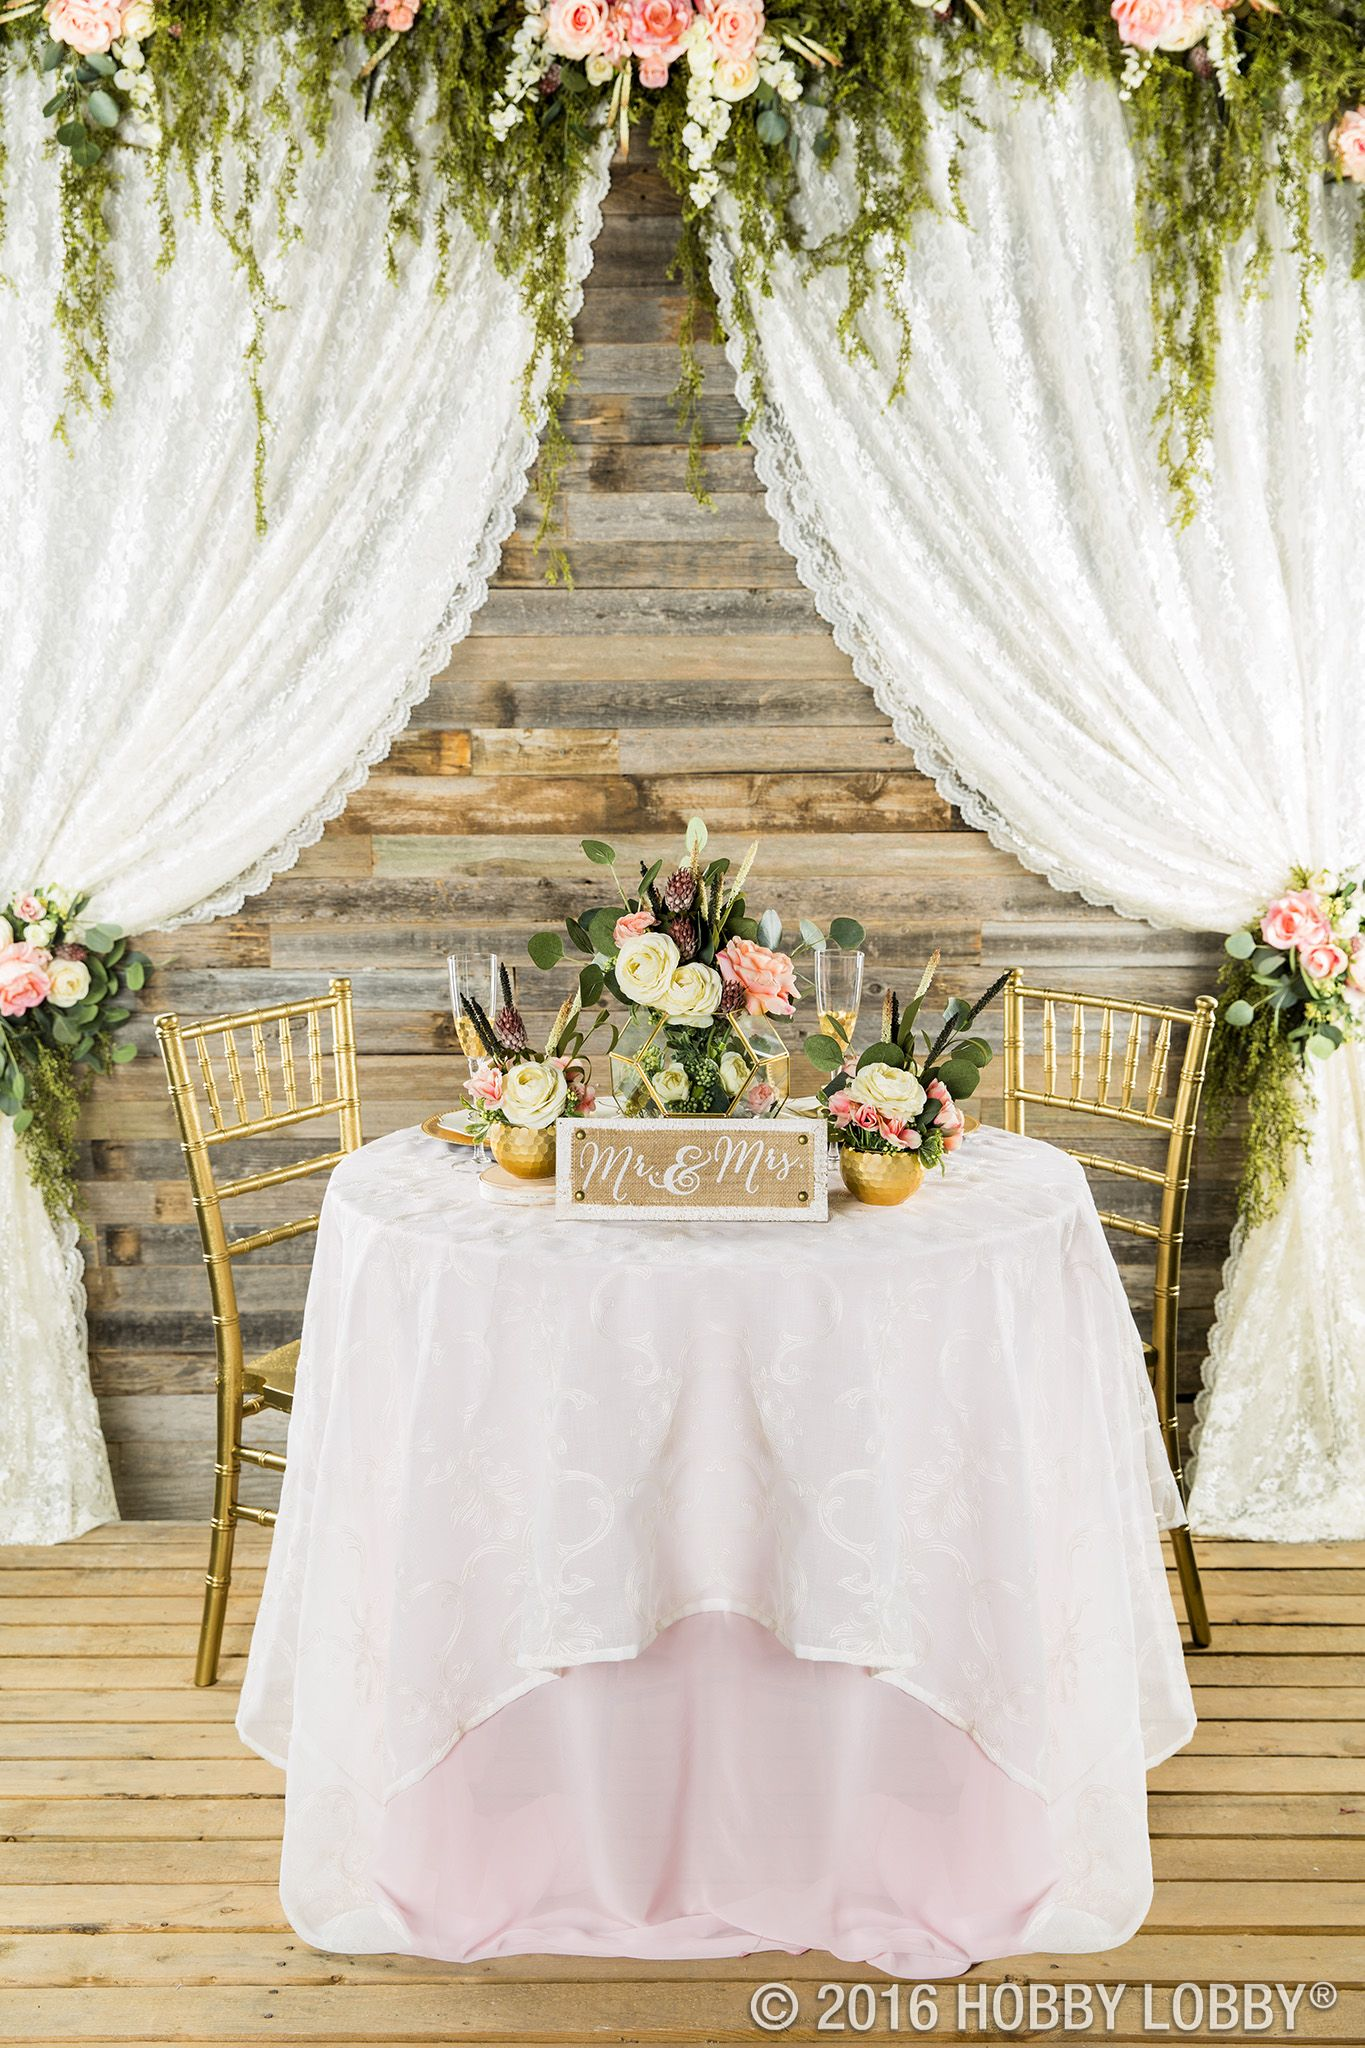 Dress up your cake table with gold and floral accents for an elegant ...